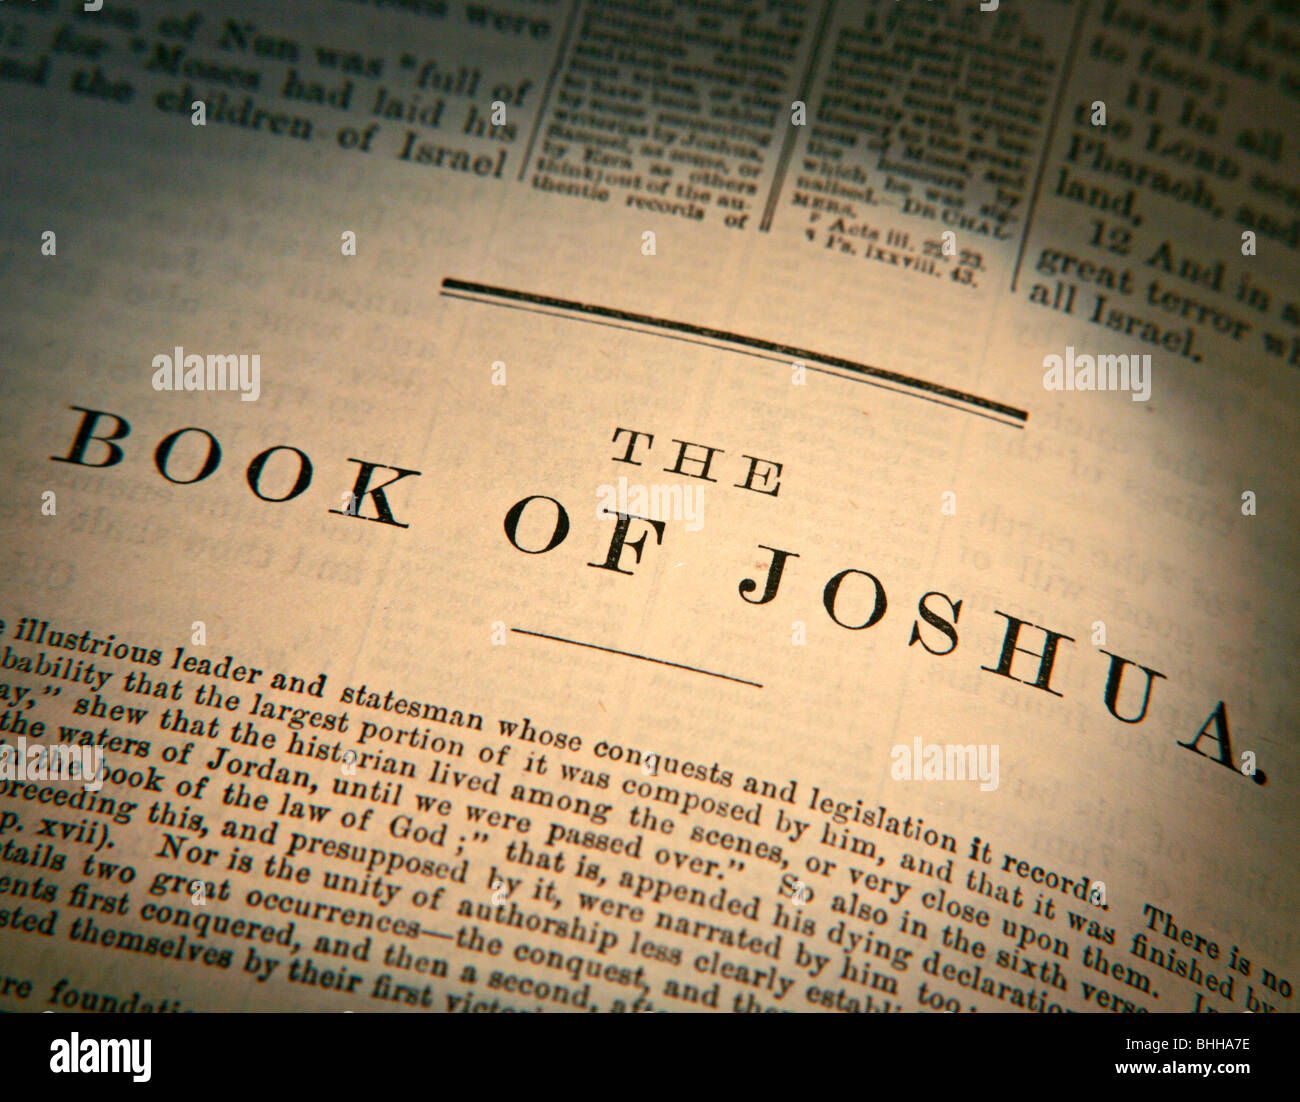 Old Testament, Book of Joshua Title Page from the King James Version of the Bible in English - Stock Image